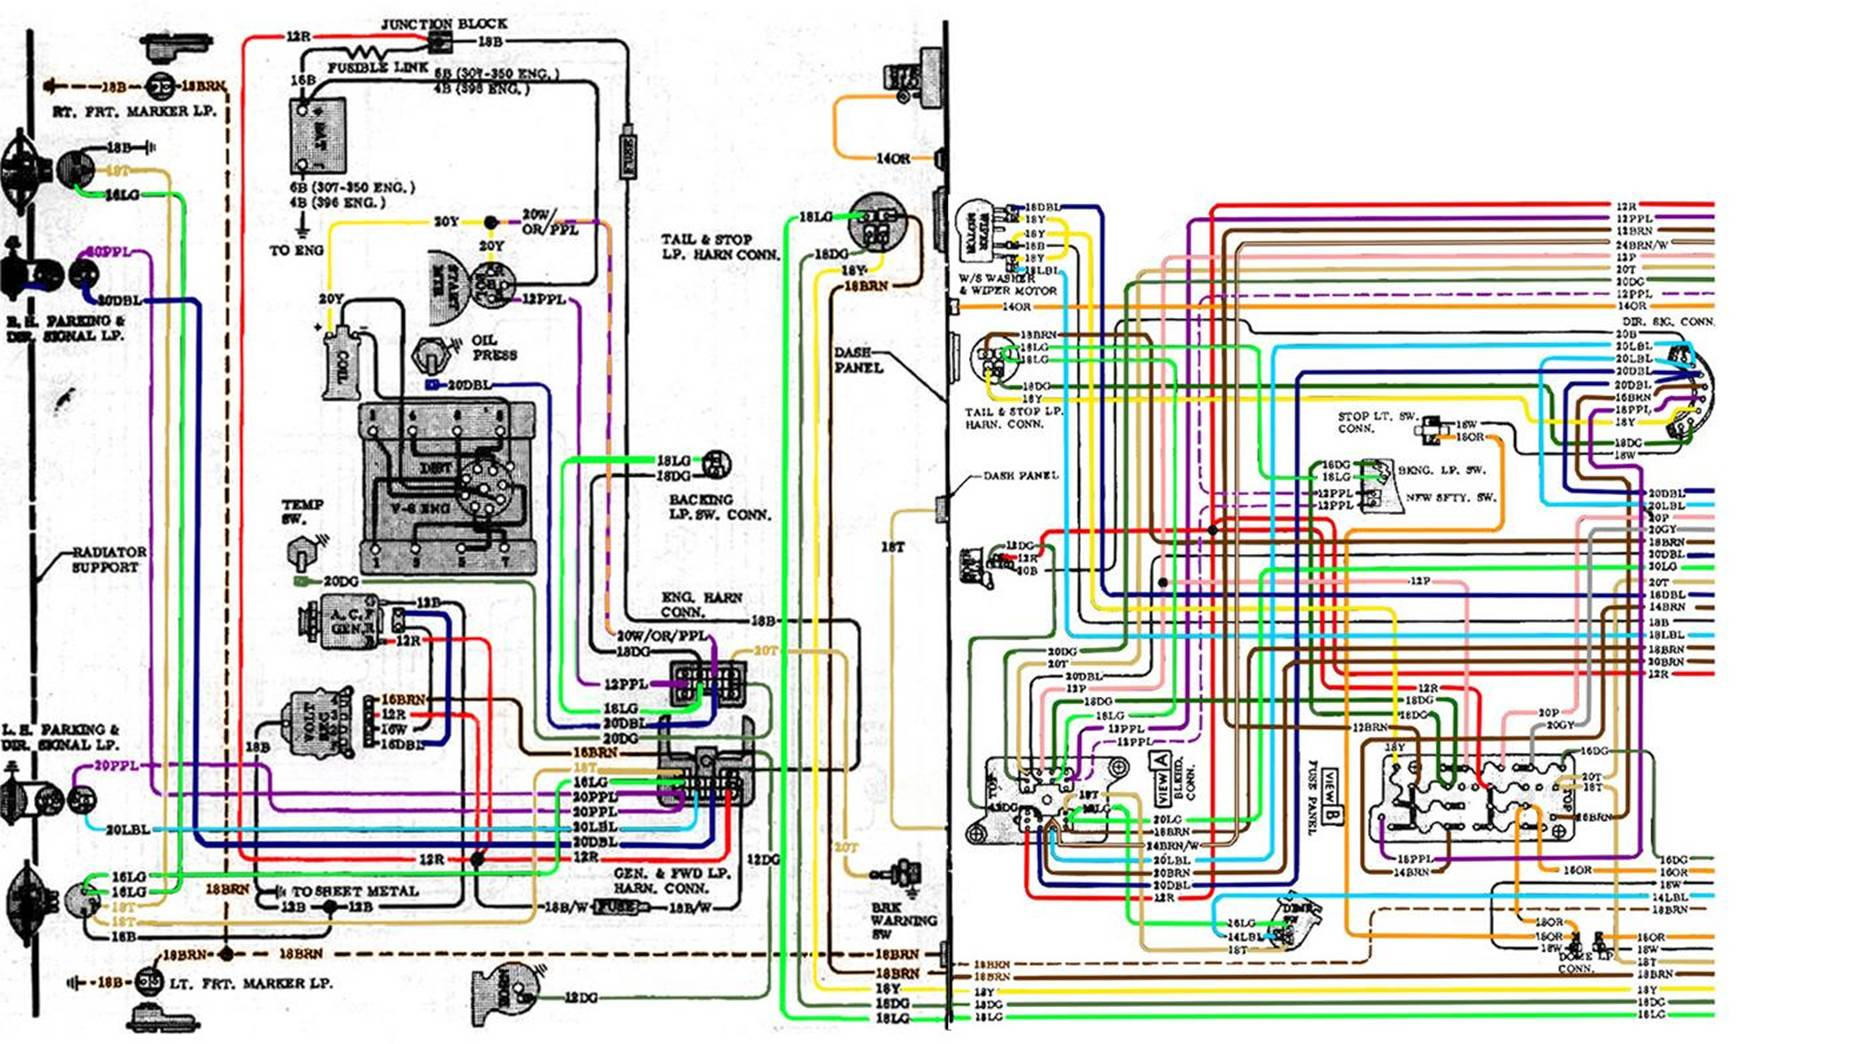 hight resolution of 72 chevelle engine wiring harness diagram wiring diagram centre 1966 chevelle engine harness diagram